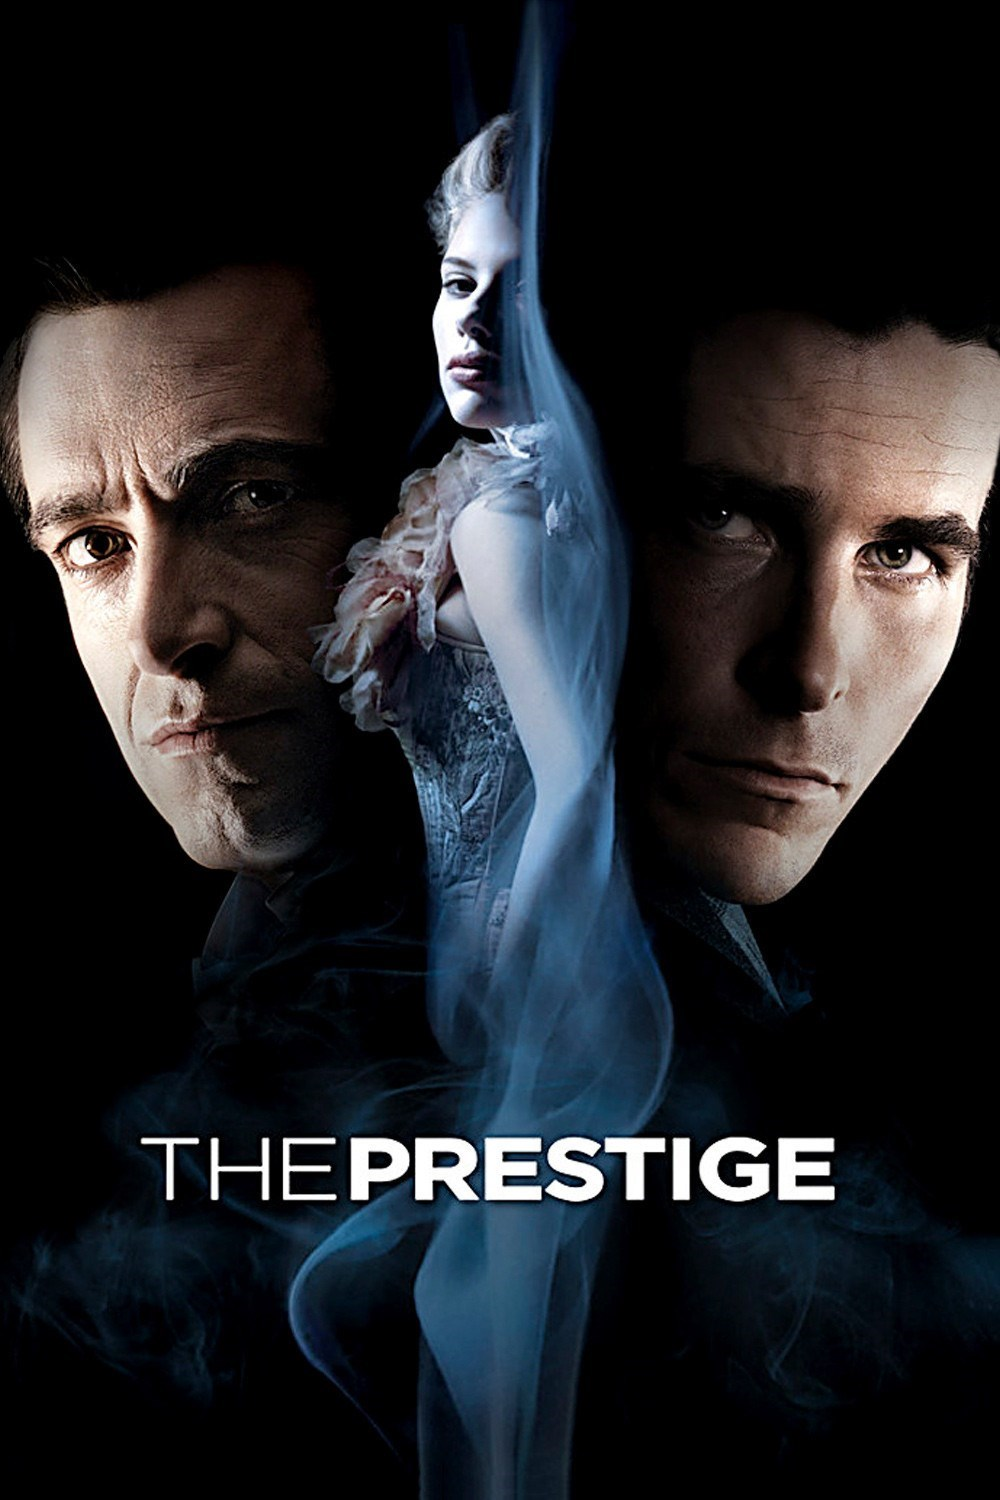 The Prestige film poster